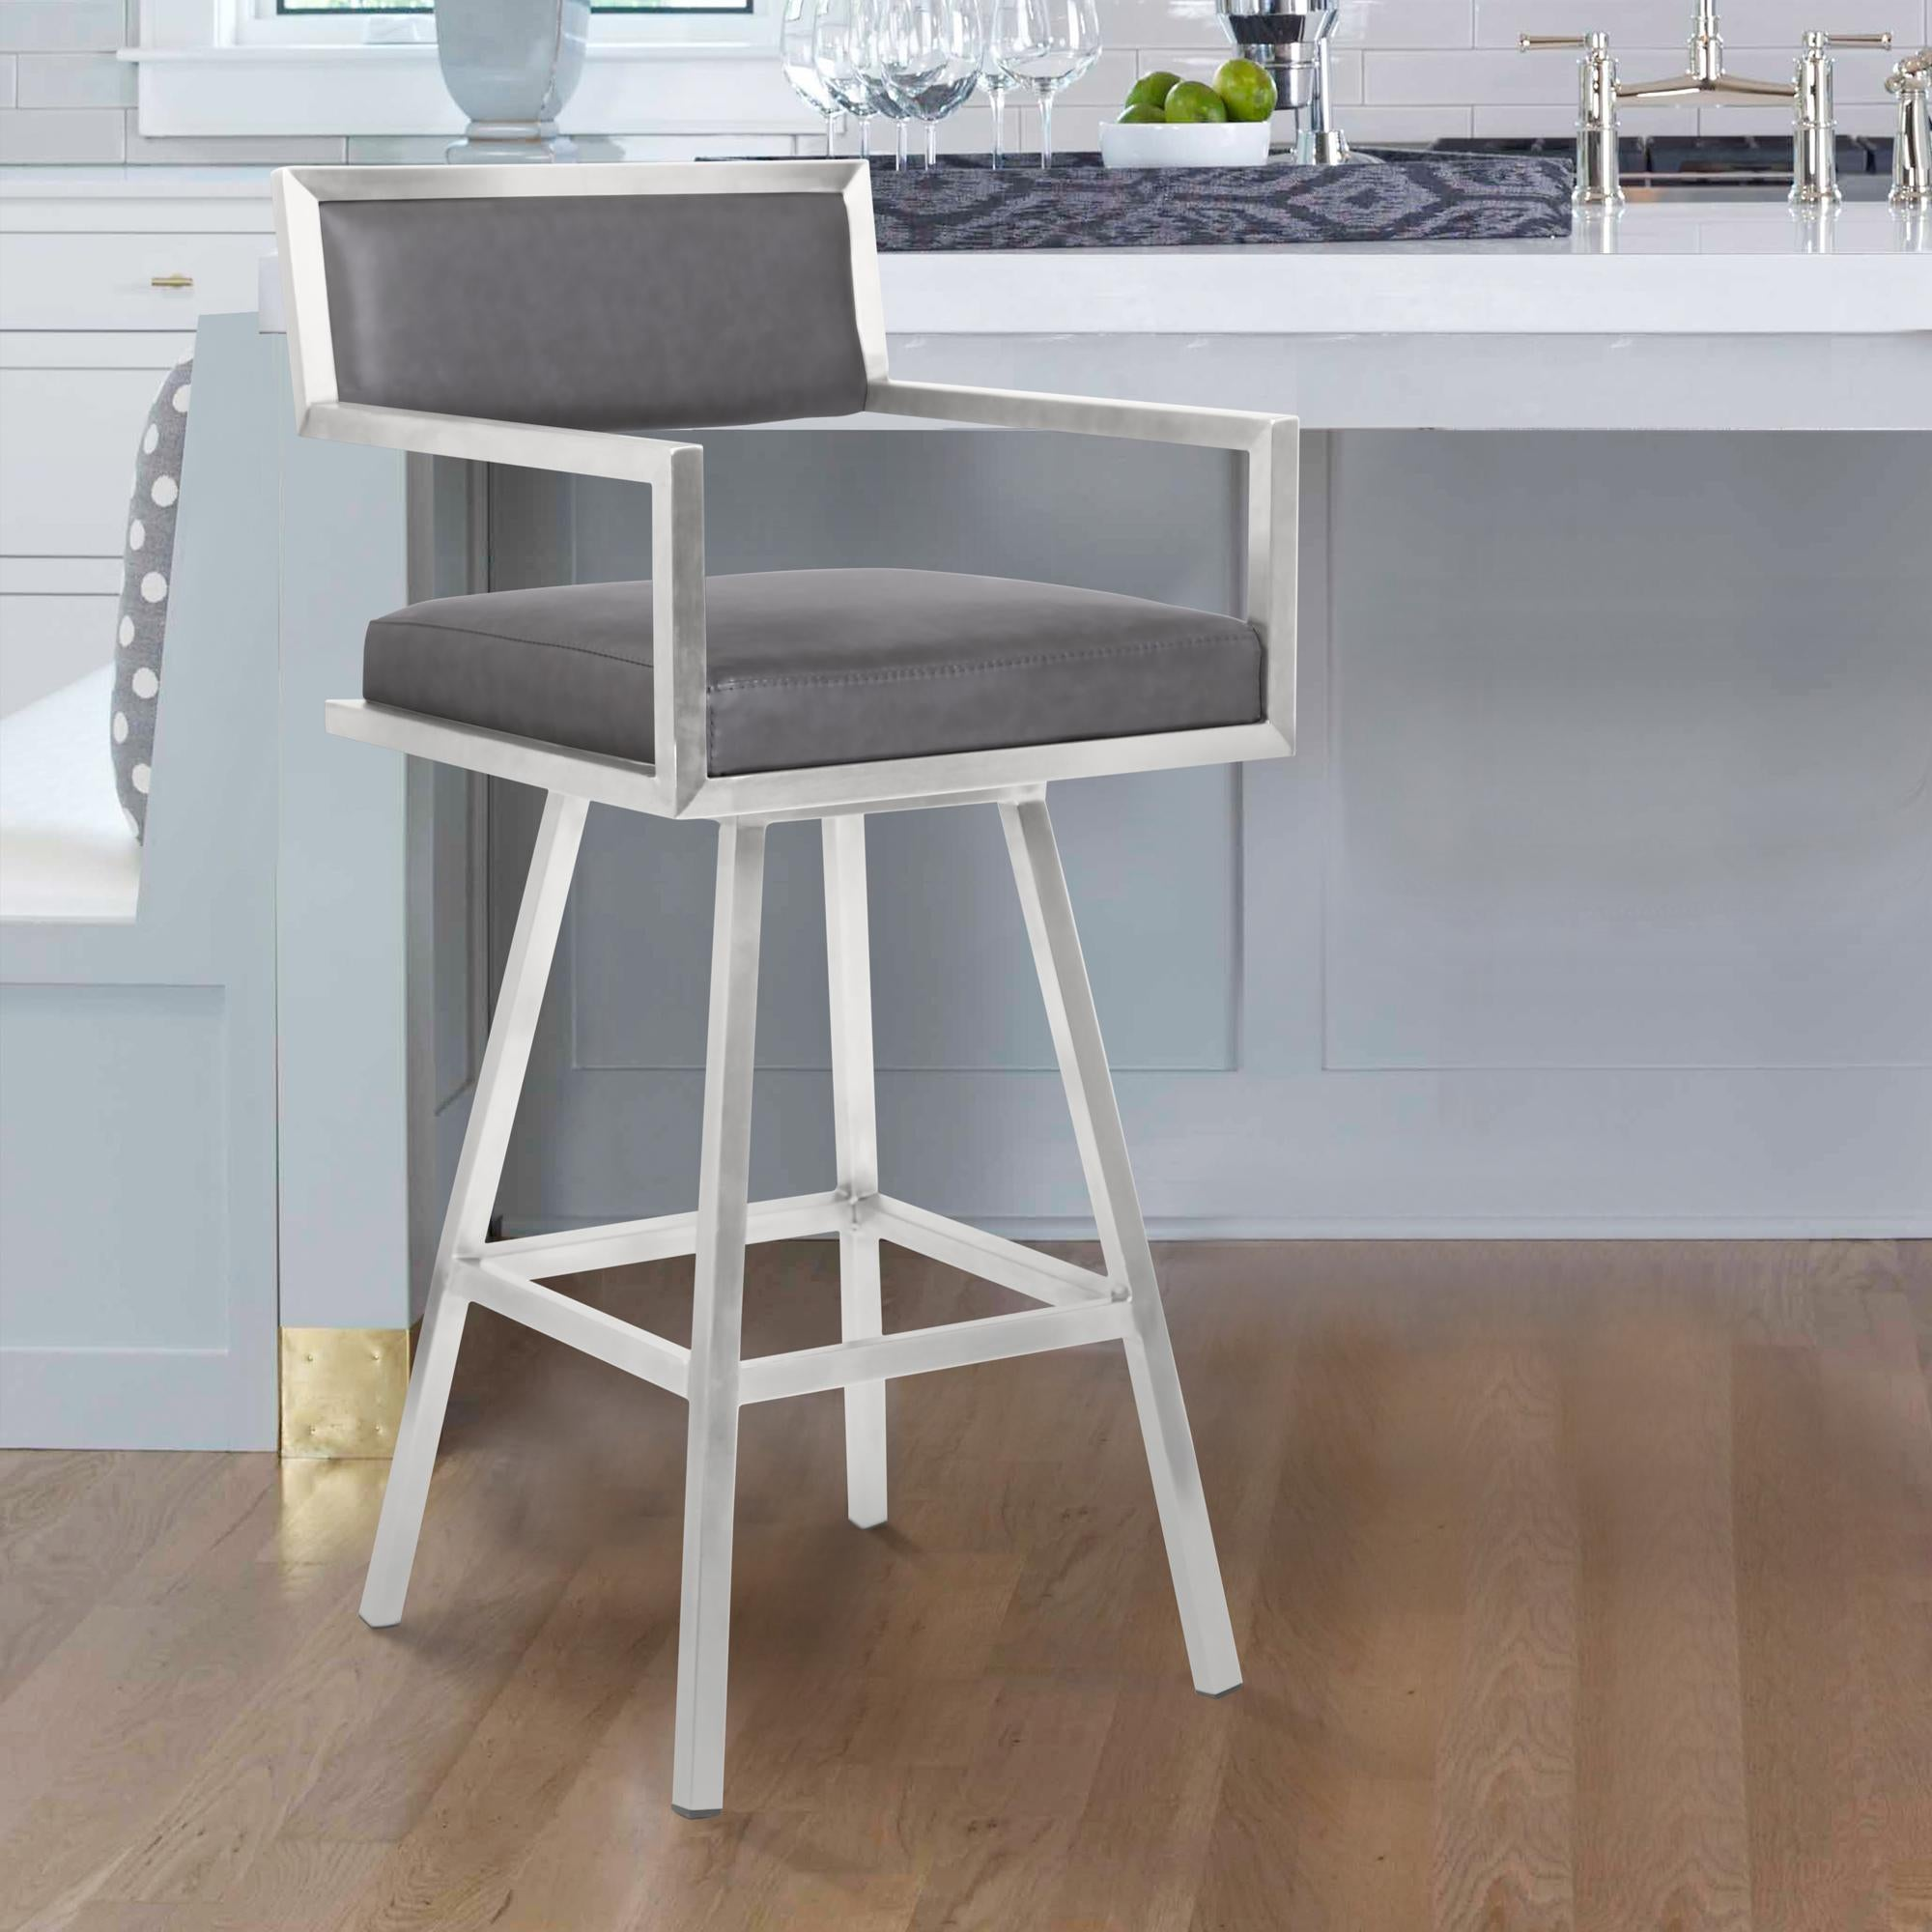 Armen Living Dylan 30' Bar Height Barstool in Brushed Stainless Steel and Vintage Grey Faux Leather